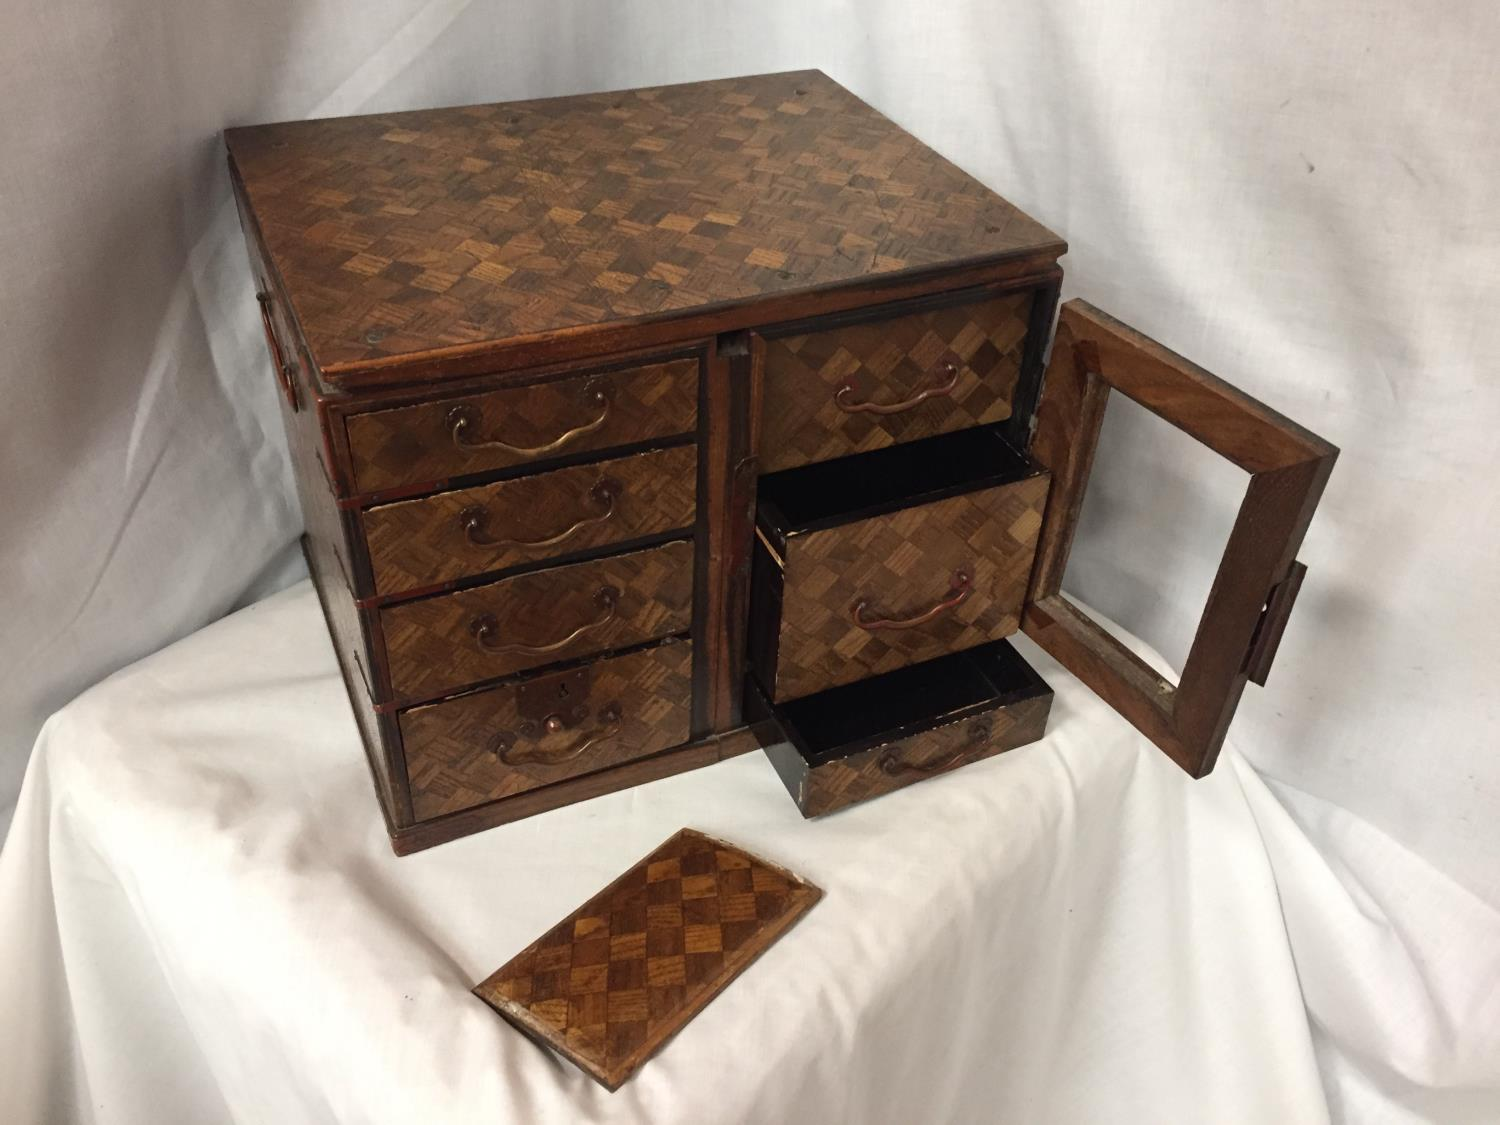 A MINATURE PARQUE WOODEN CHEST WITH DRAWERS 32CM X 26CM - Image 3 of 6